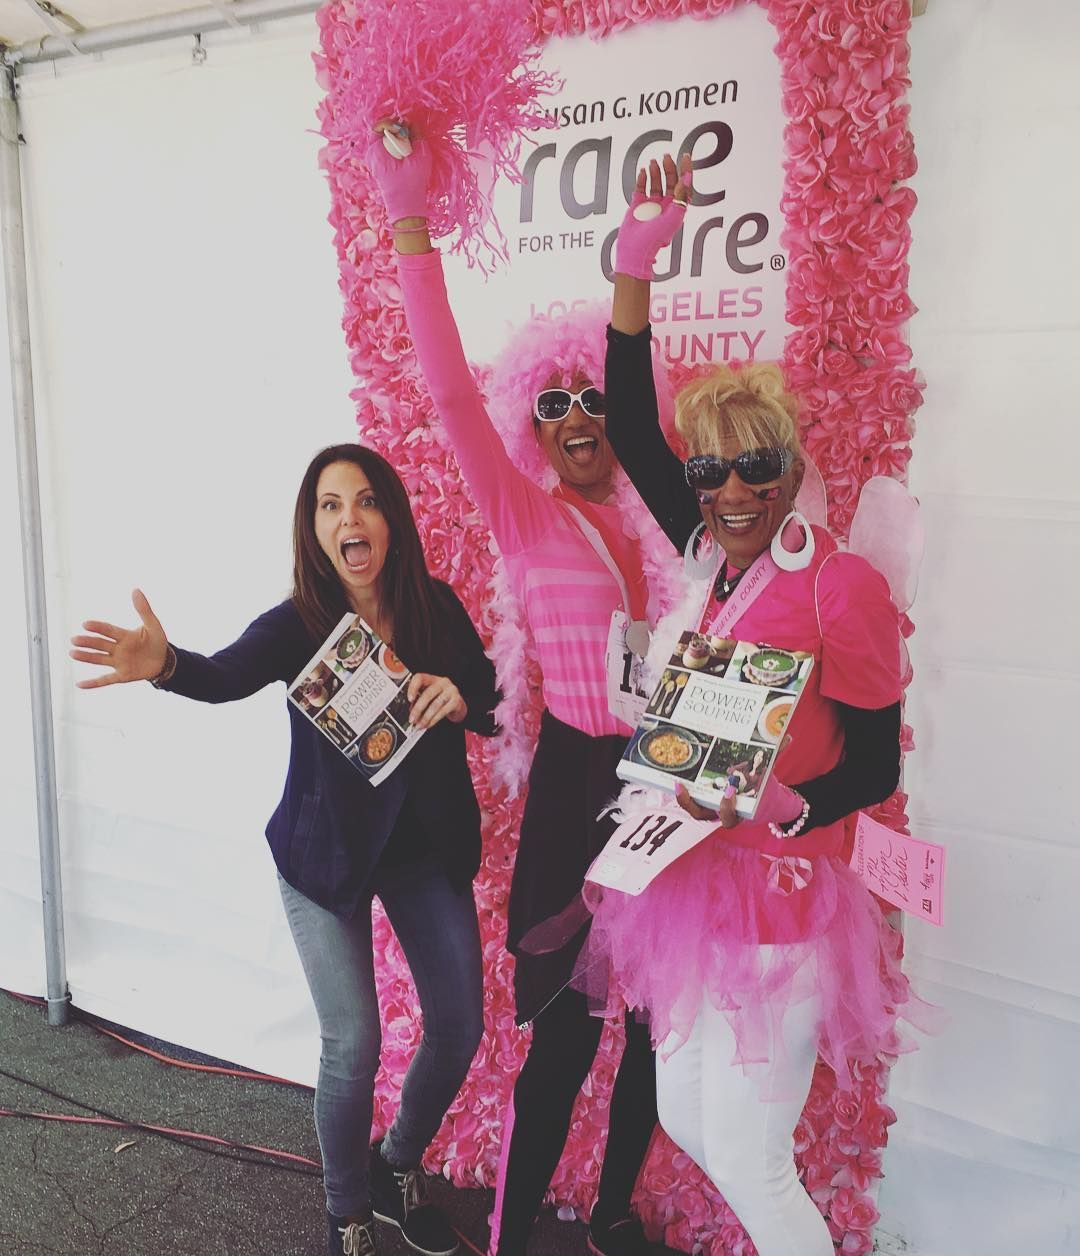 THINK BLUE: Excited to be out here with @susangkomen for #raceforthecure !!! Look at these survivors lovin my new book Power Souping!  #breastcancerawareness by rachelbellerrdn